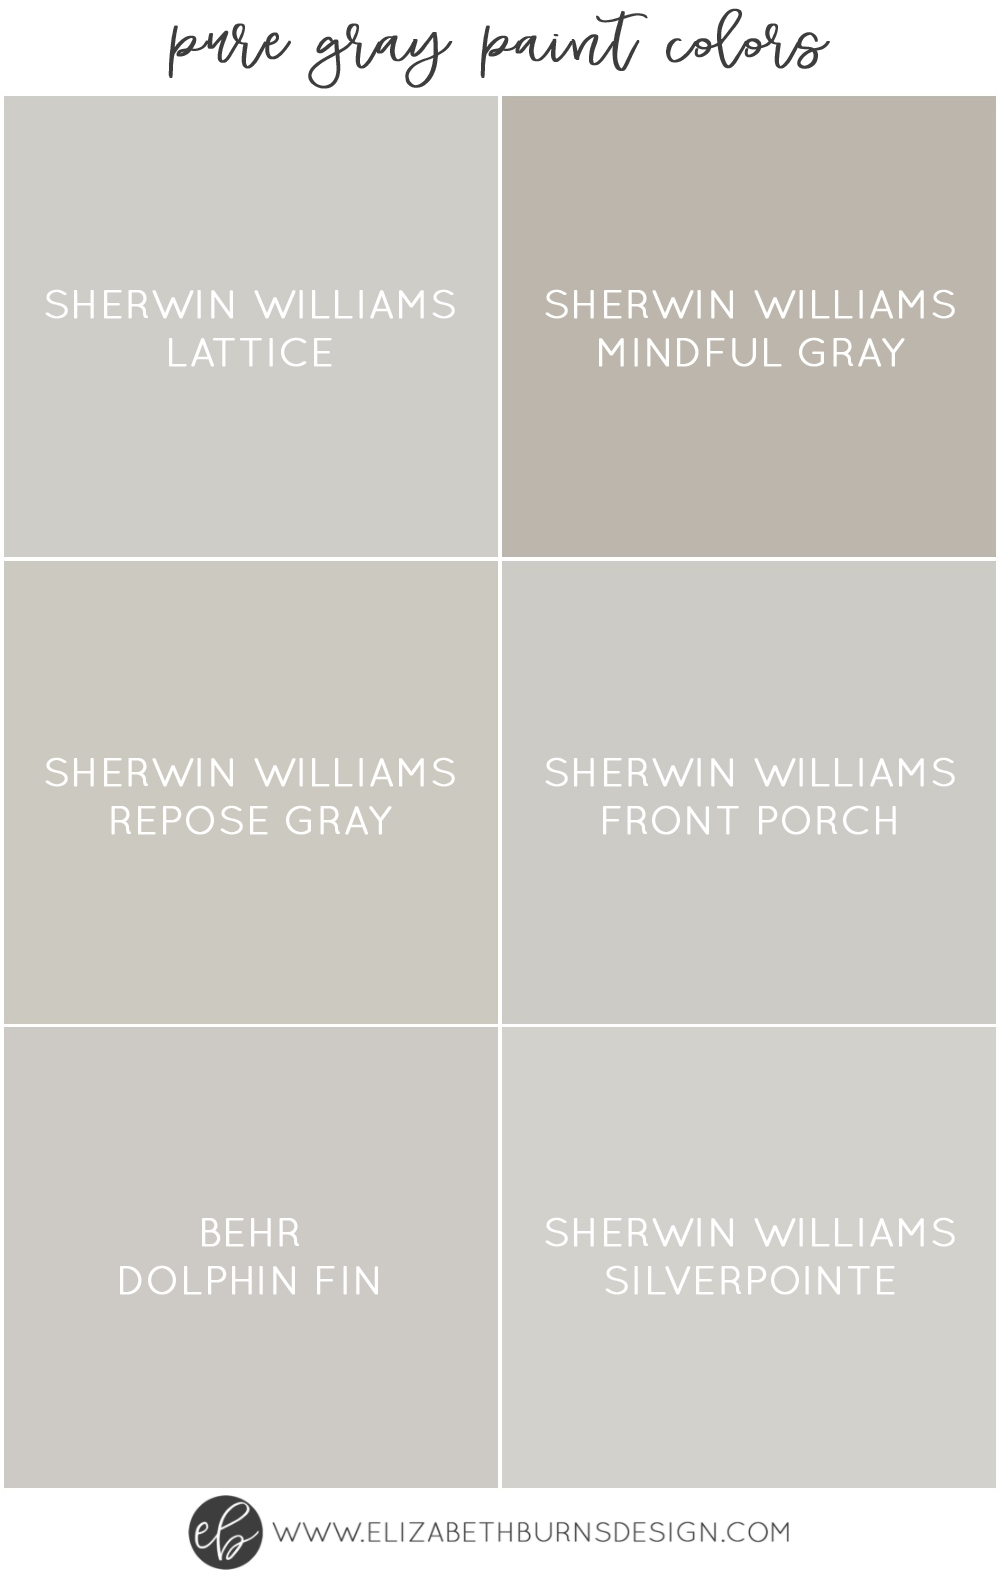 The Best Pure Grey Paint Colors Paint Guide Elizabeth Burns Design Ralei